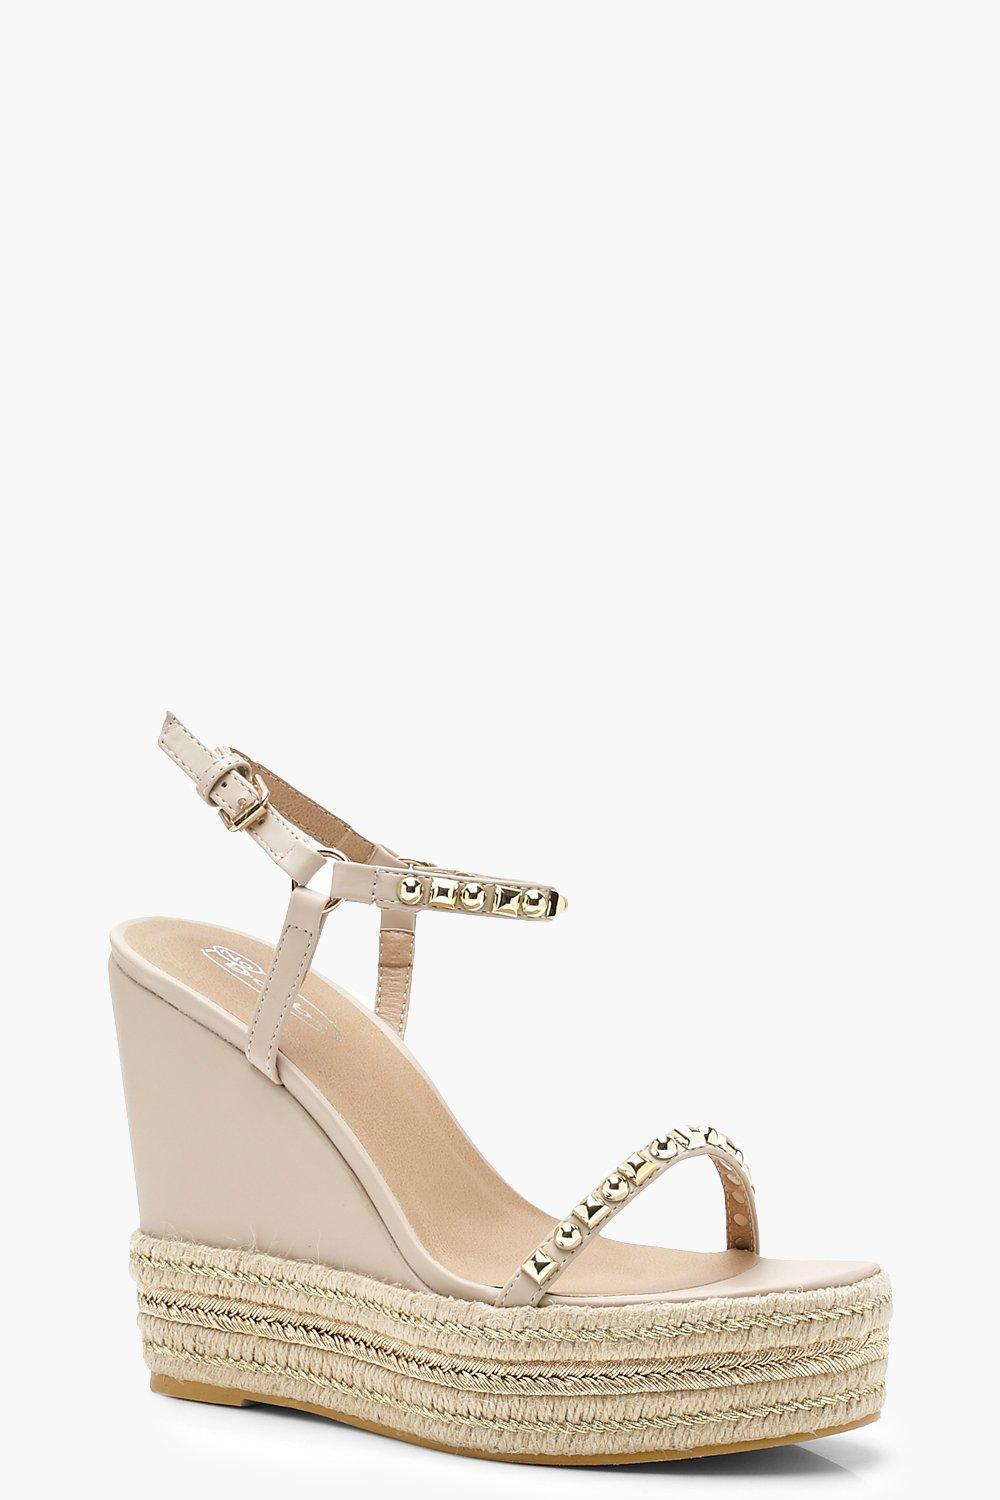 168ebc606d15 Boohoo Two Part Studded Wedges in Natural - Lyst